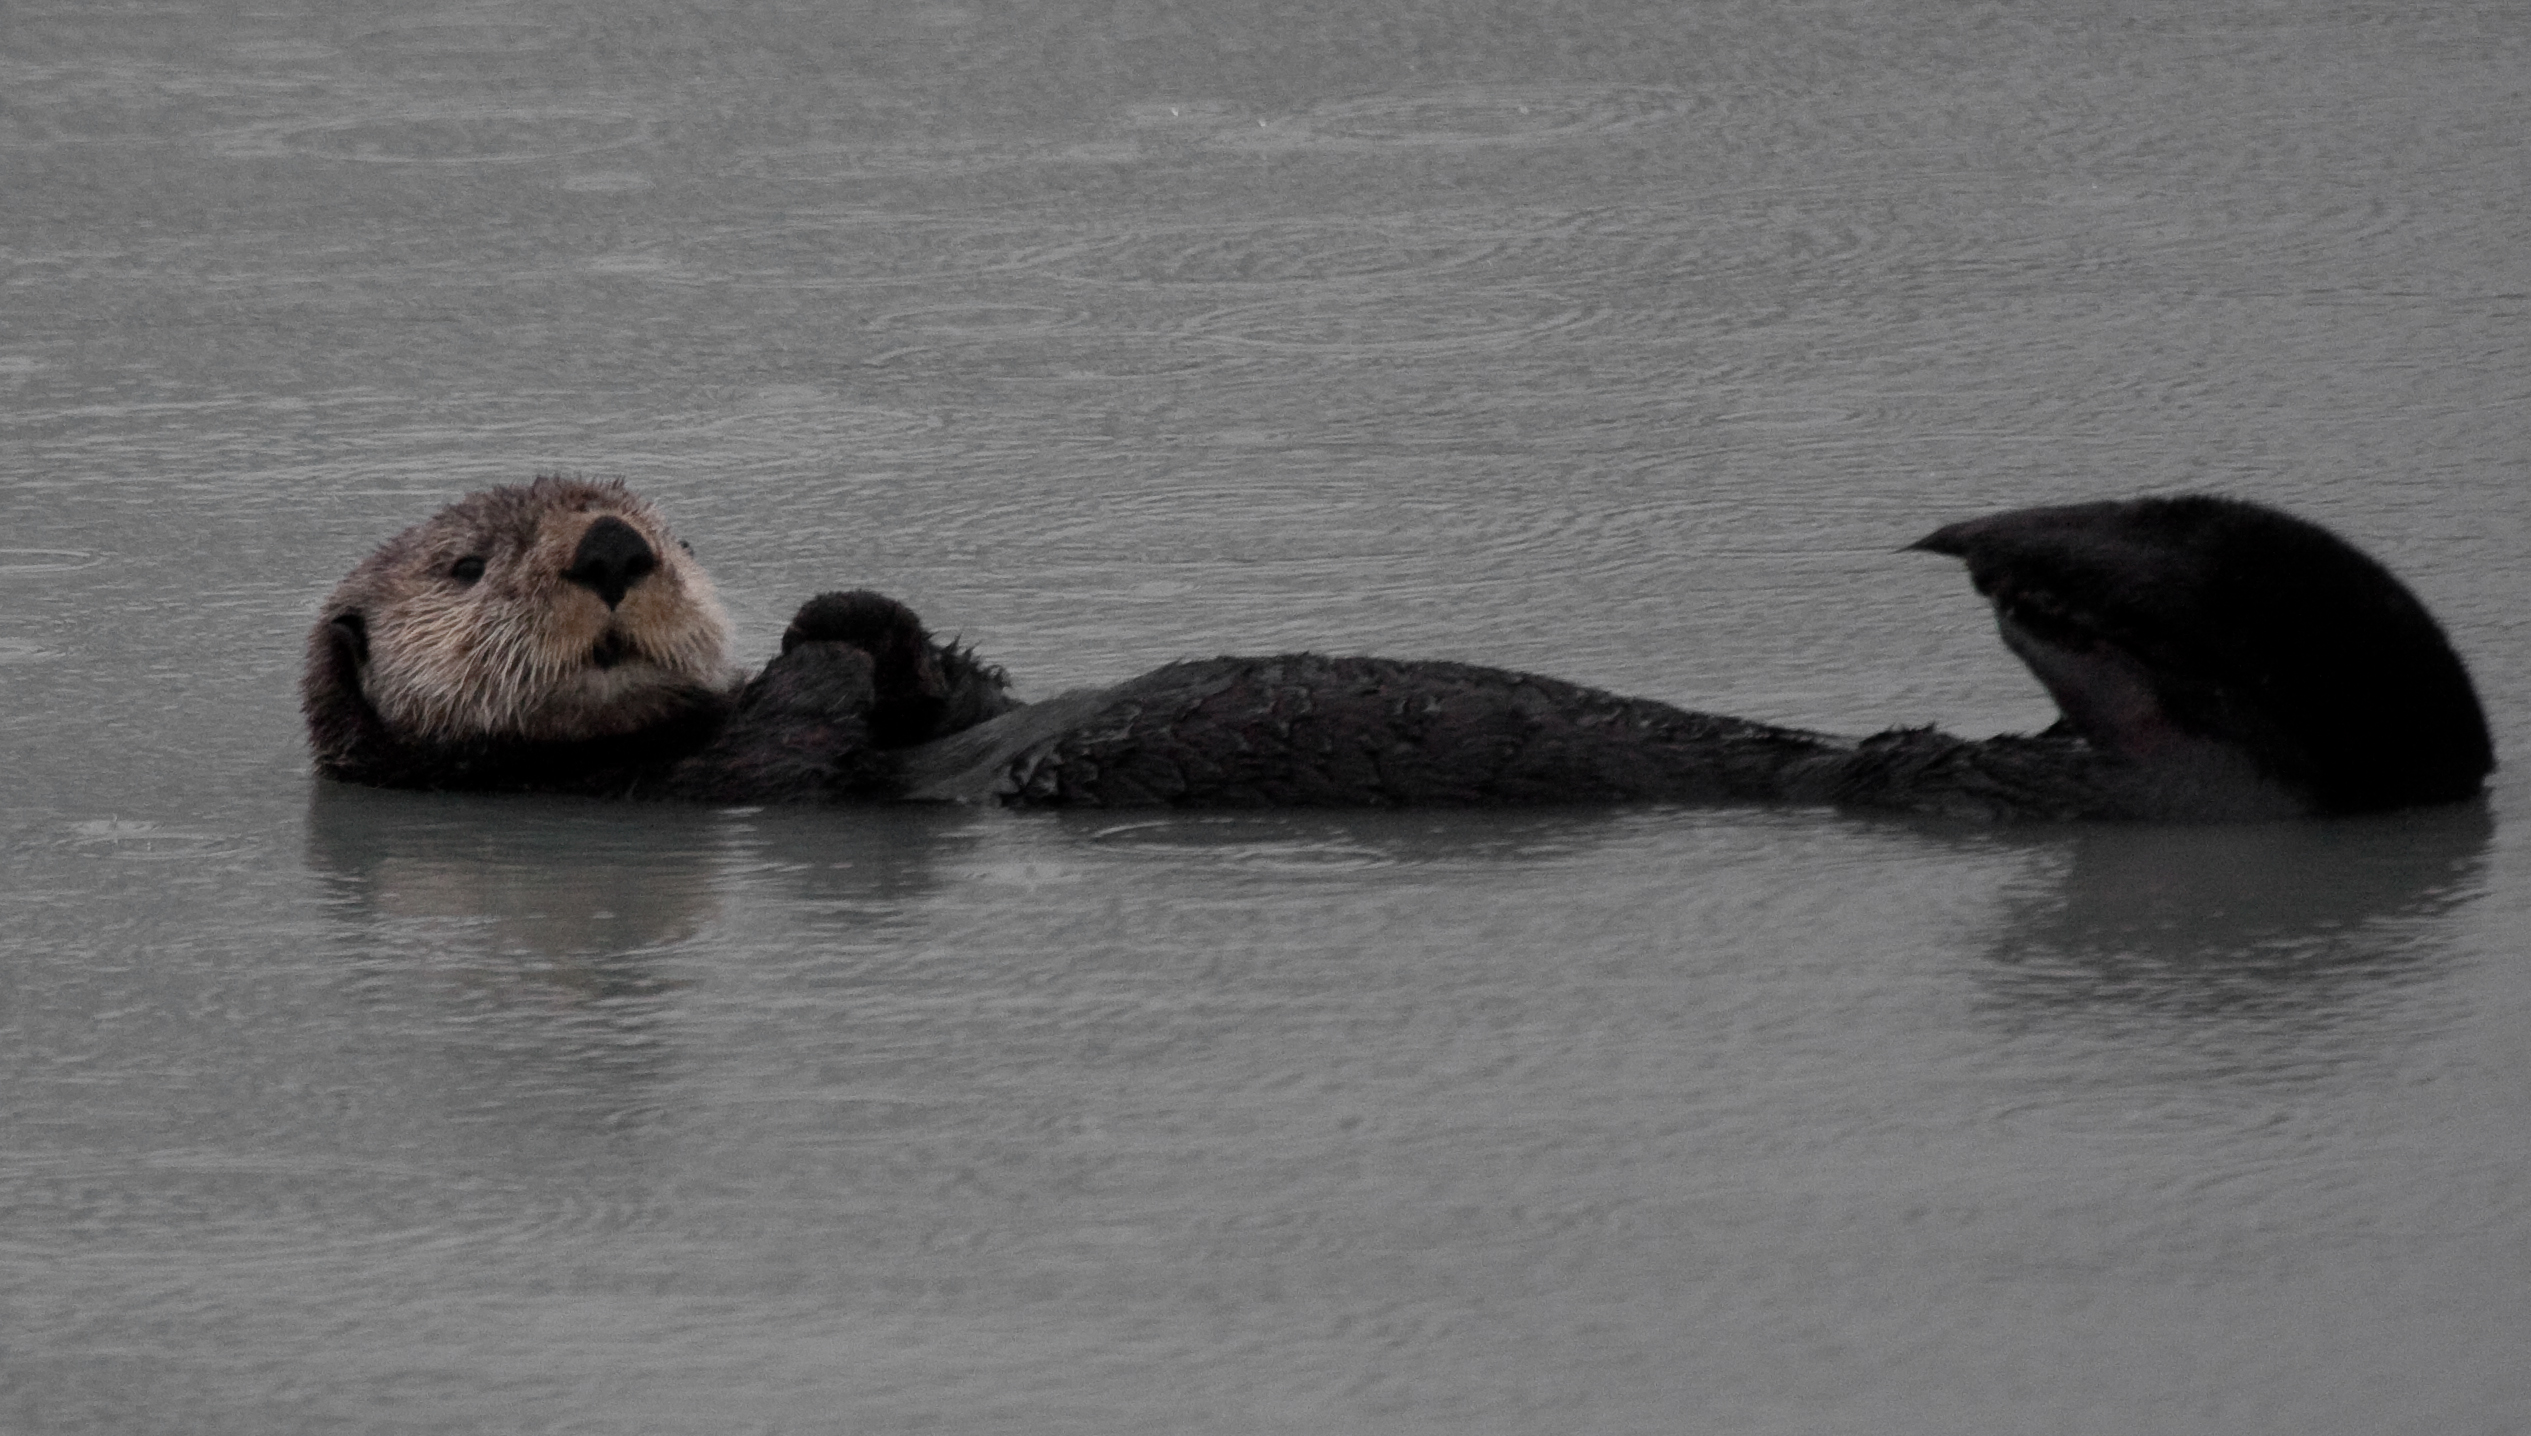 What do otters sound like || |a labeled diagram of a sea otter| Otter Sounds